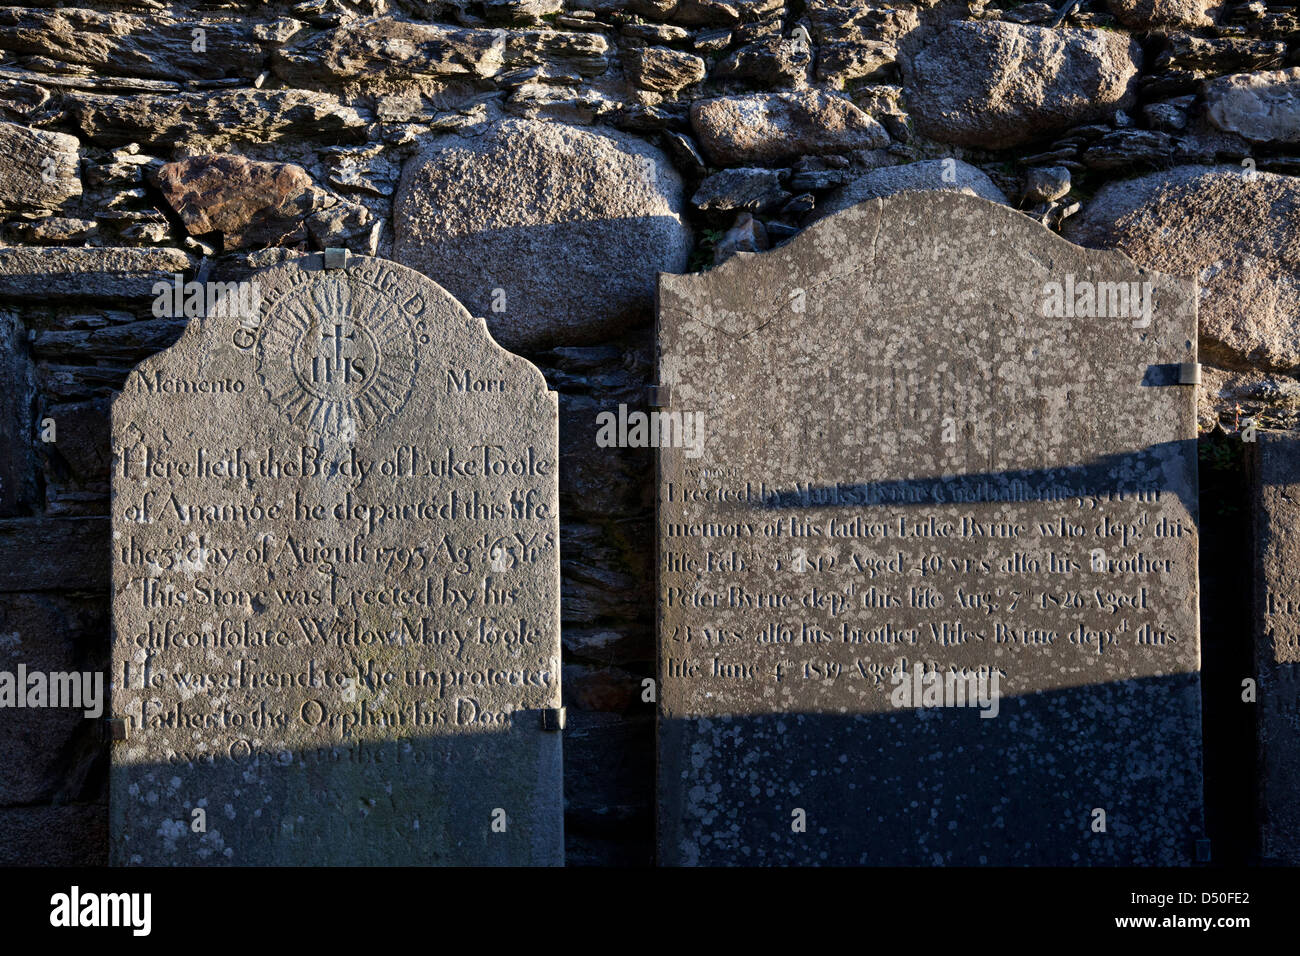 18th century gravestones beside St Kevin's church, Glendalough monastic site, County Wicklow, Ireland. - Stock Image